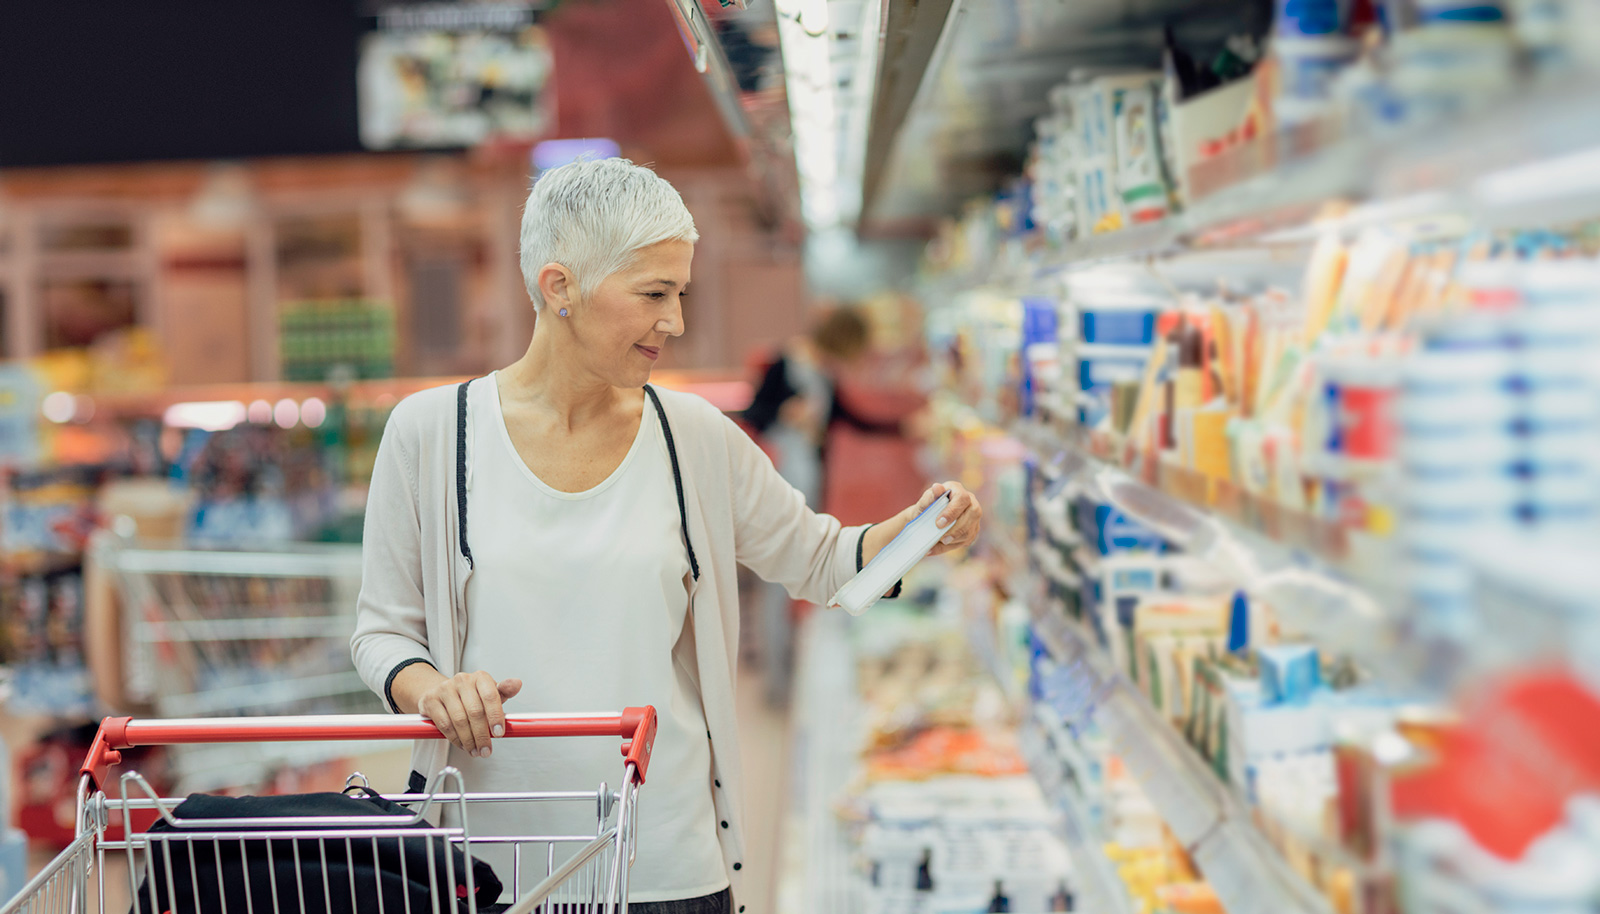 Yes, Grocery Shopping Does Make You Feel Like You Have Your Life Together